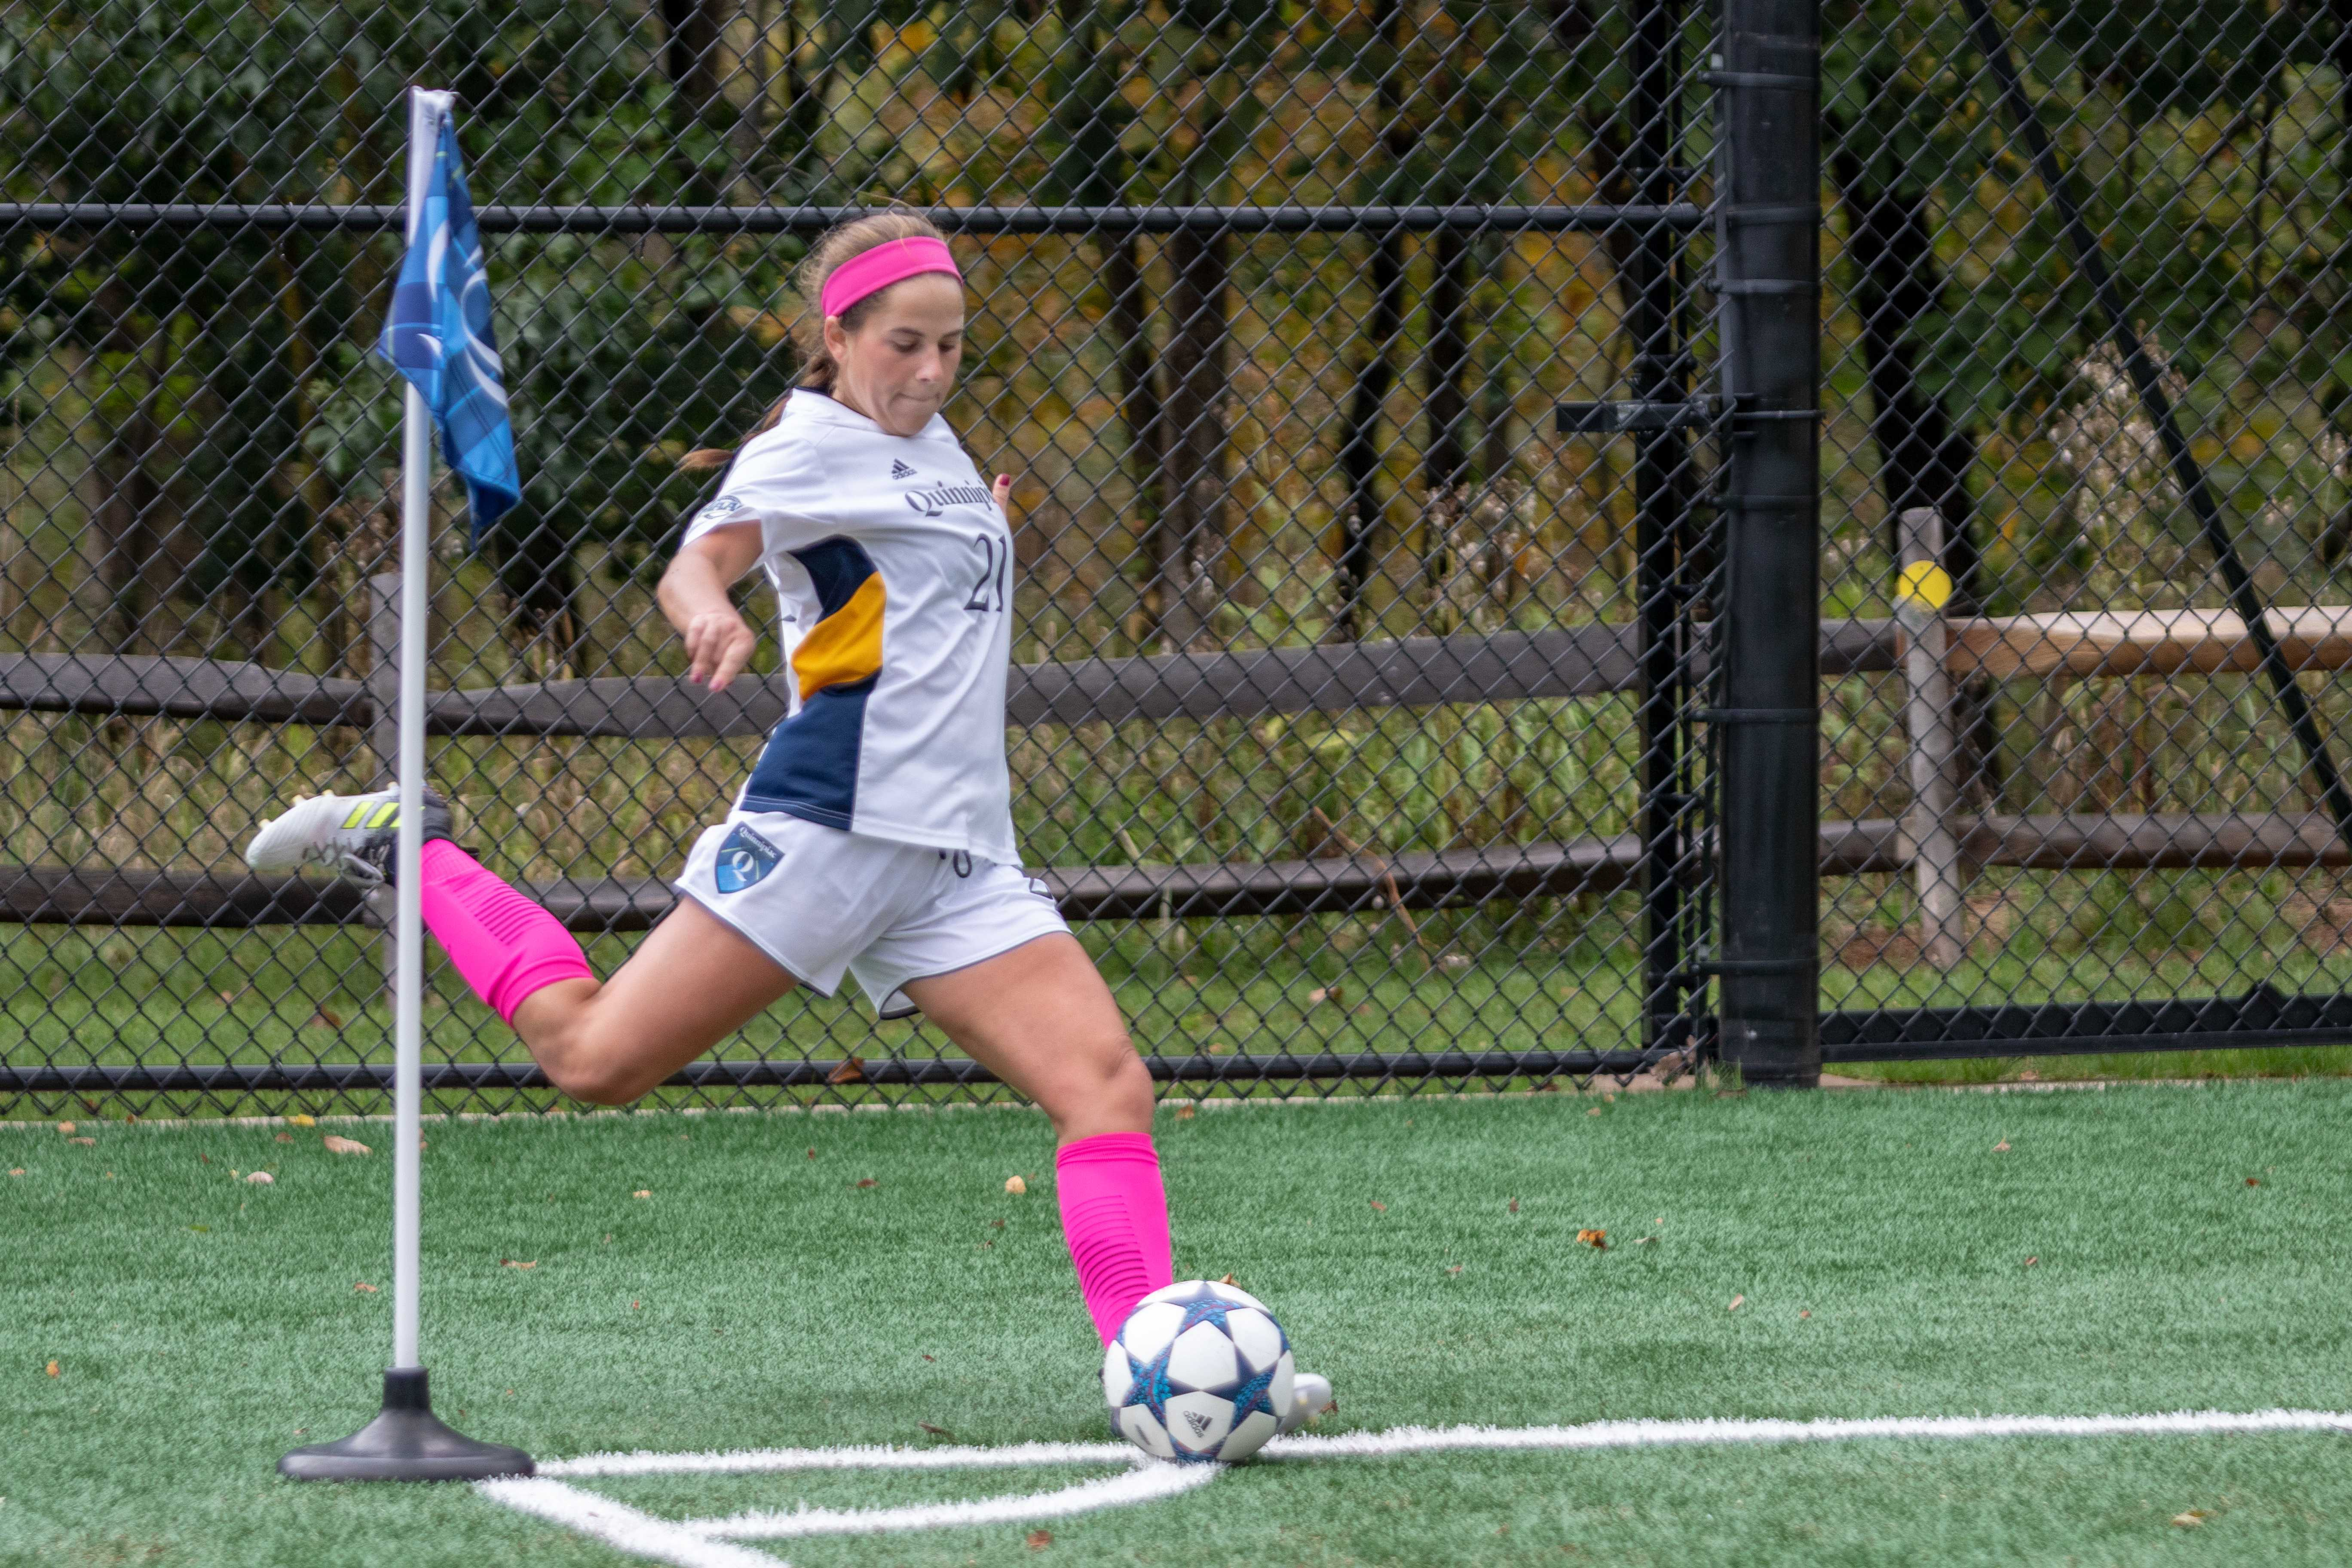 Quinnipiac earns second straight 1-0 win